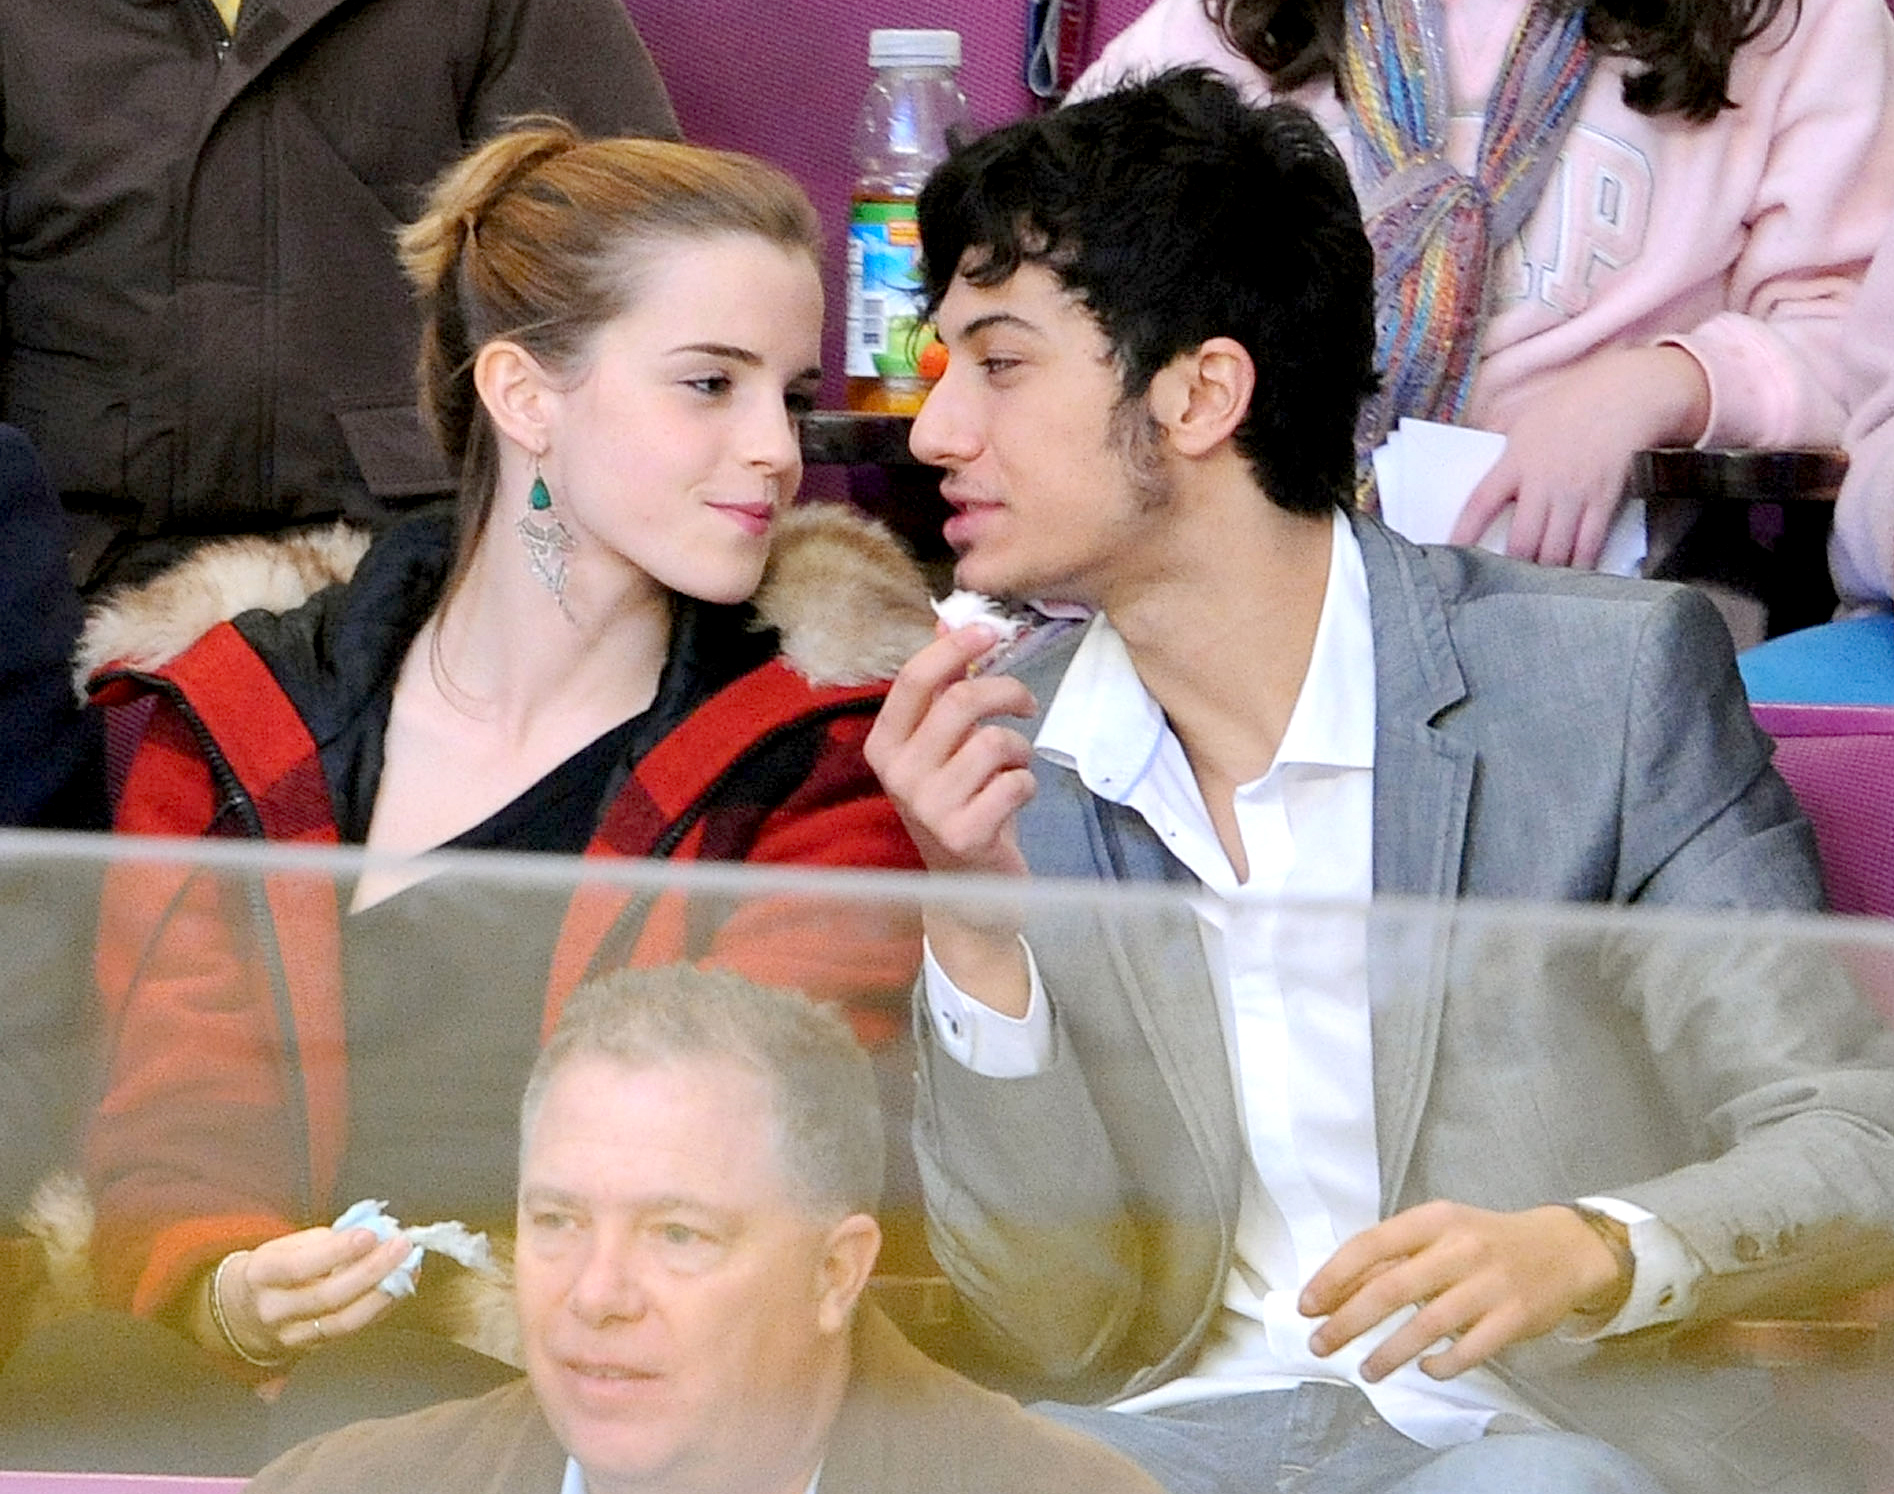 Rafael-Cebrián-Emma-Watson - The British actress met the Spanish musician at Brown University and were spotted getting cozy at a New York Rangers game in November 2009. They split in May 2010.